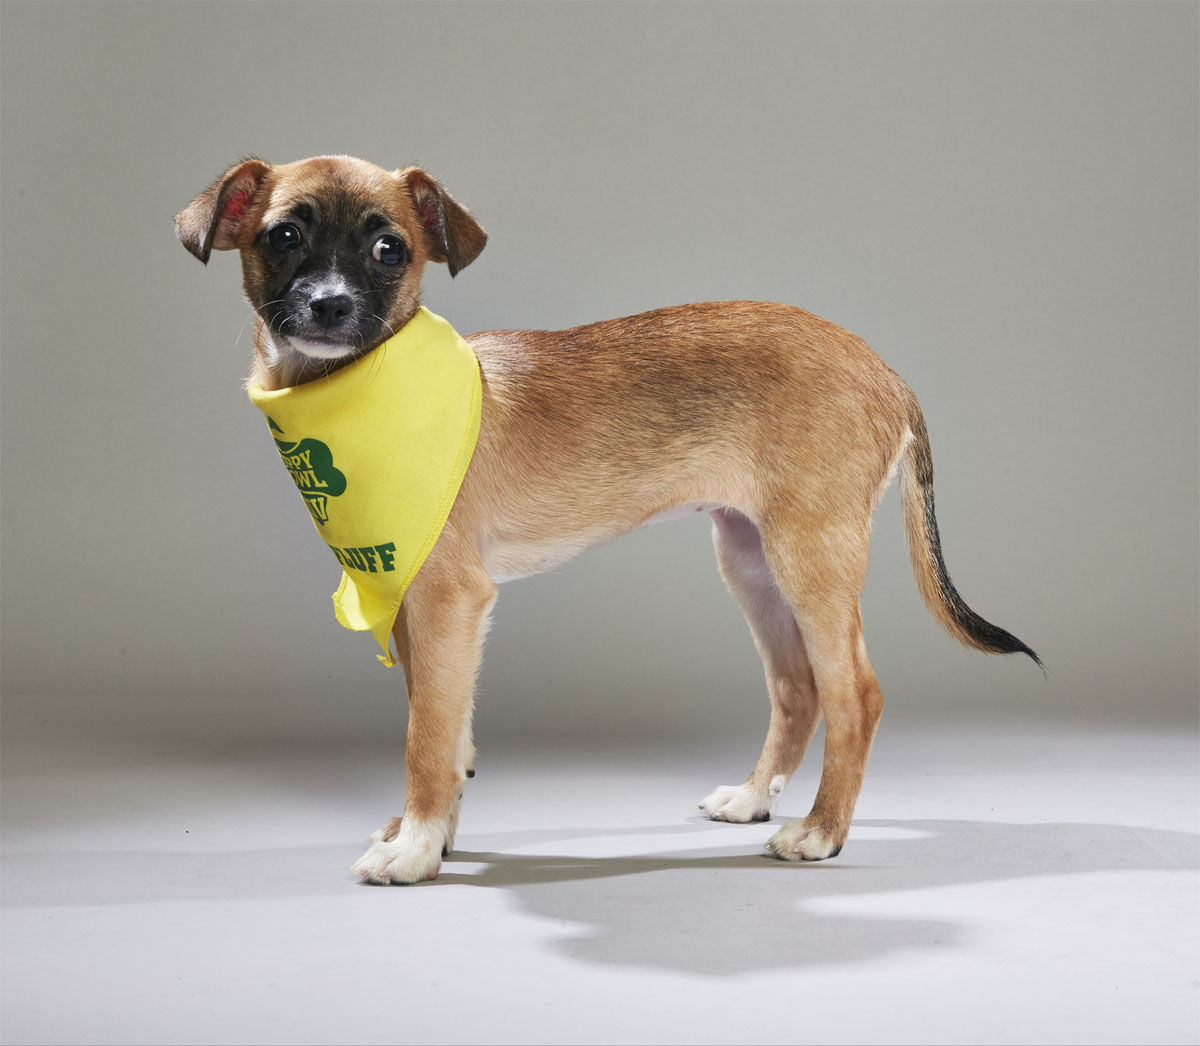 Biscuit from Social Tees. (Courtesy Animal Planet)